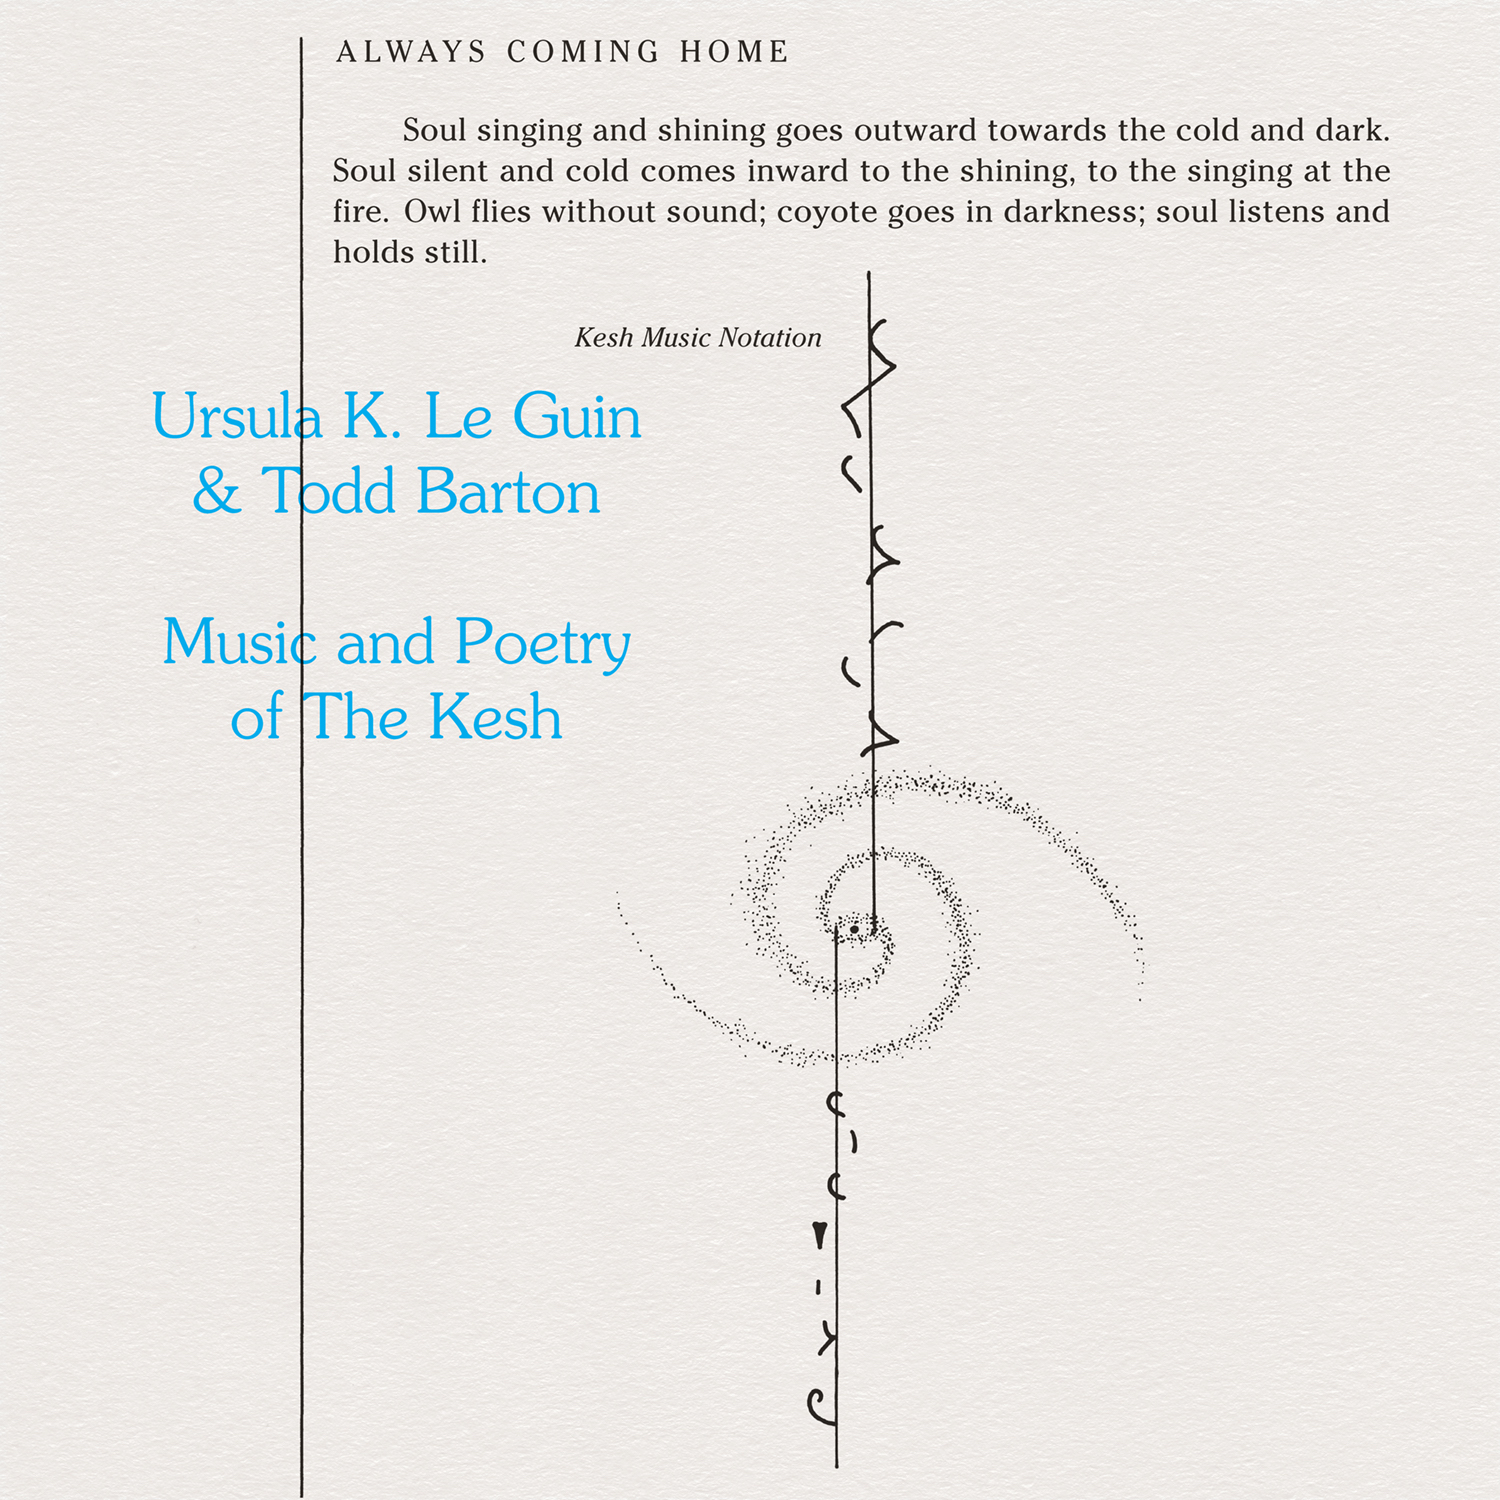 Ursula K. Le Guin and Todd Barton's Music & Poetry Of The Kesh gets first vinyl release